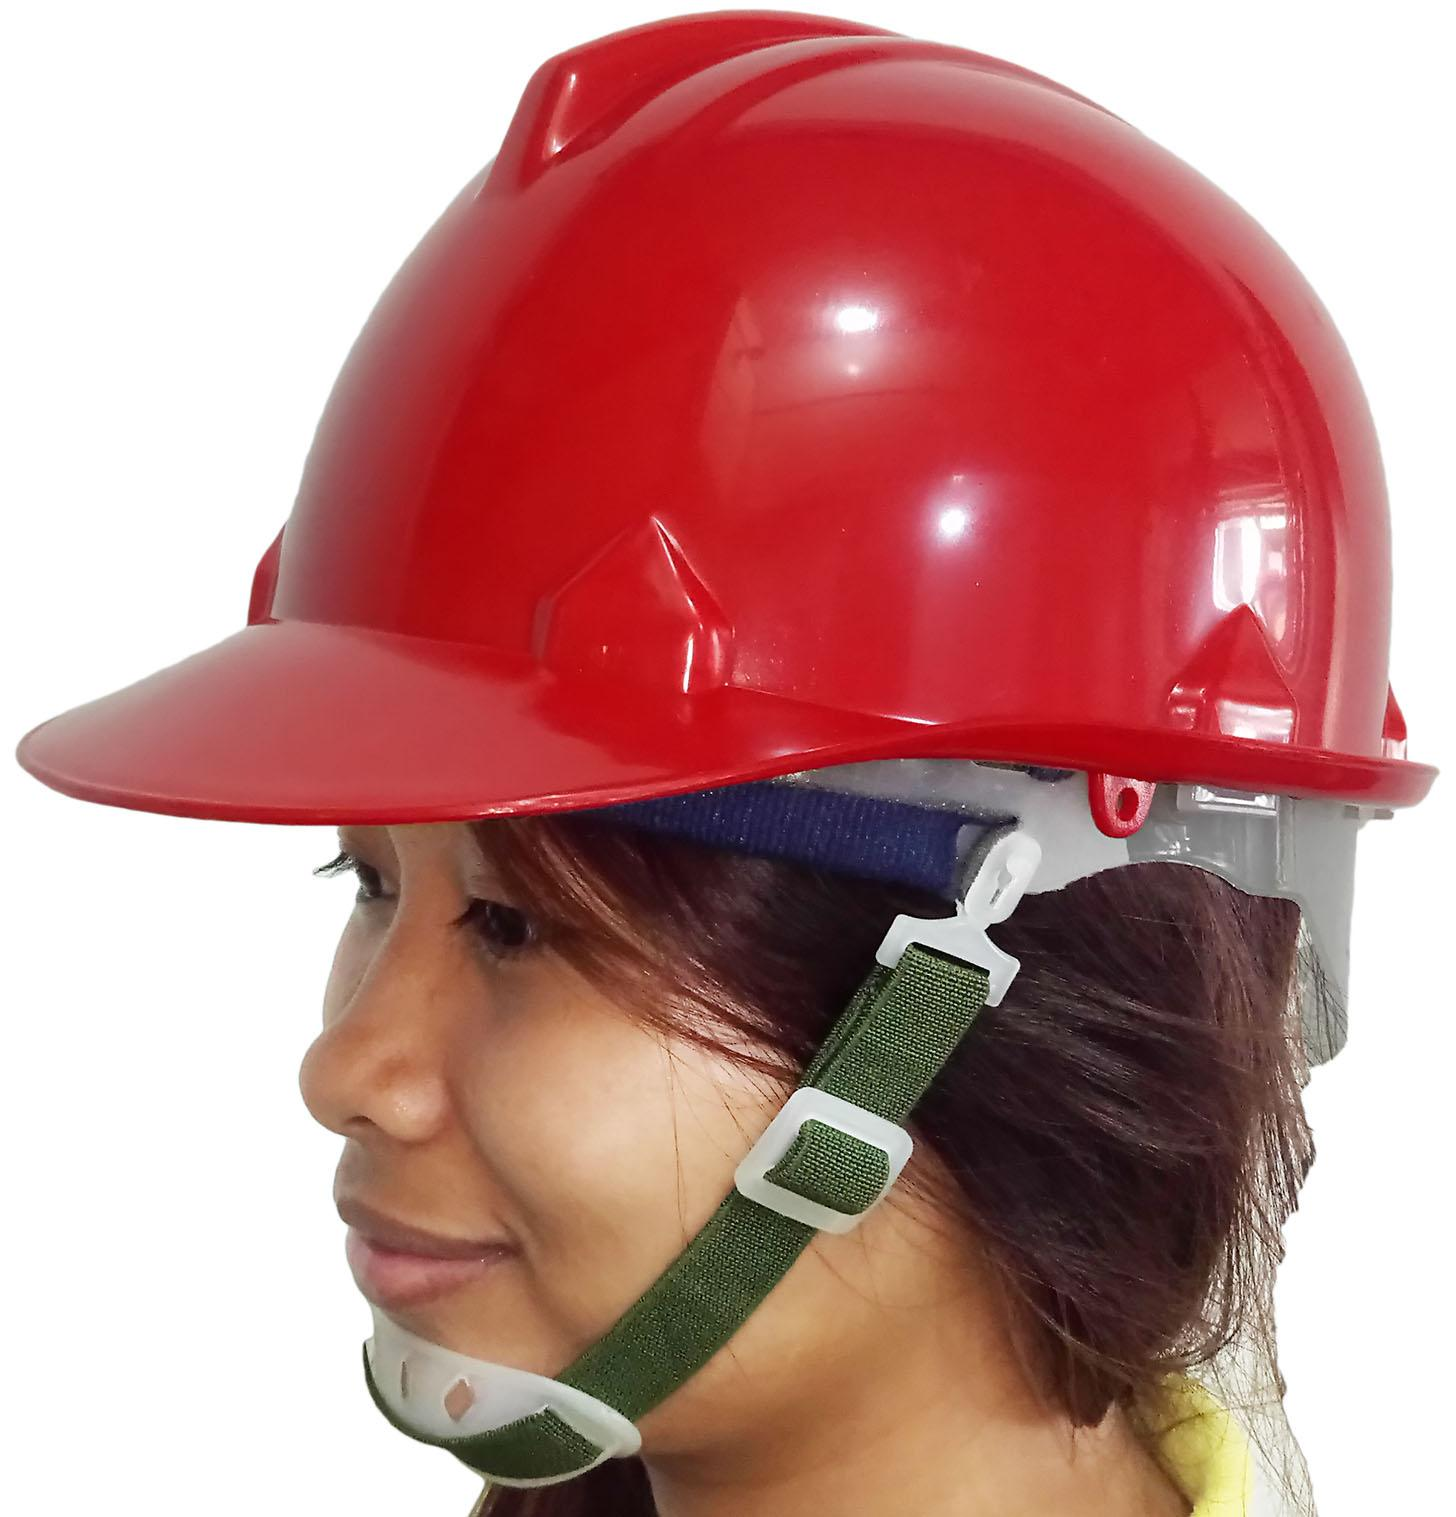 Meisons hard hat safety helmet RED PE with normal liner and chin strap Philippines